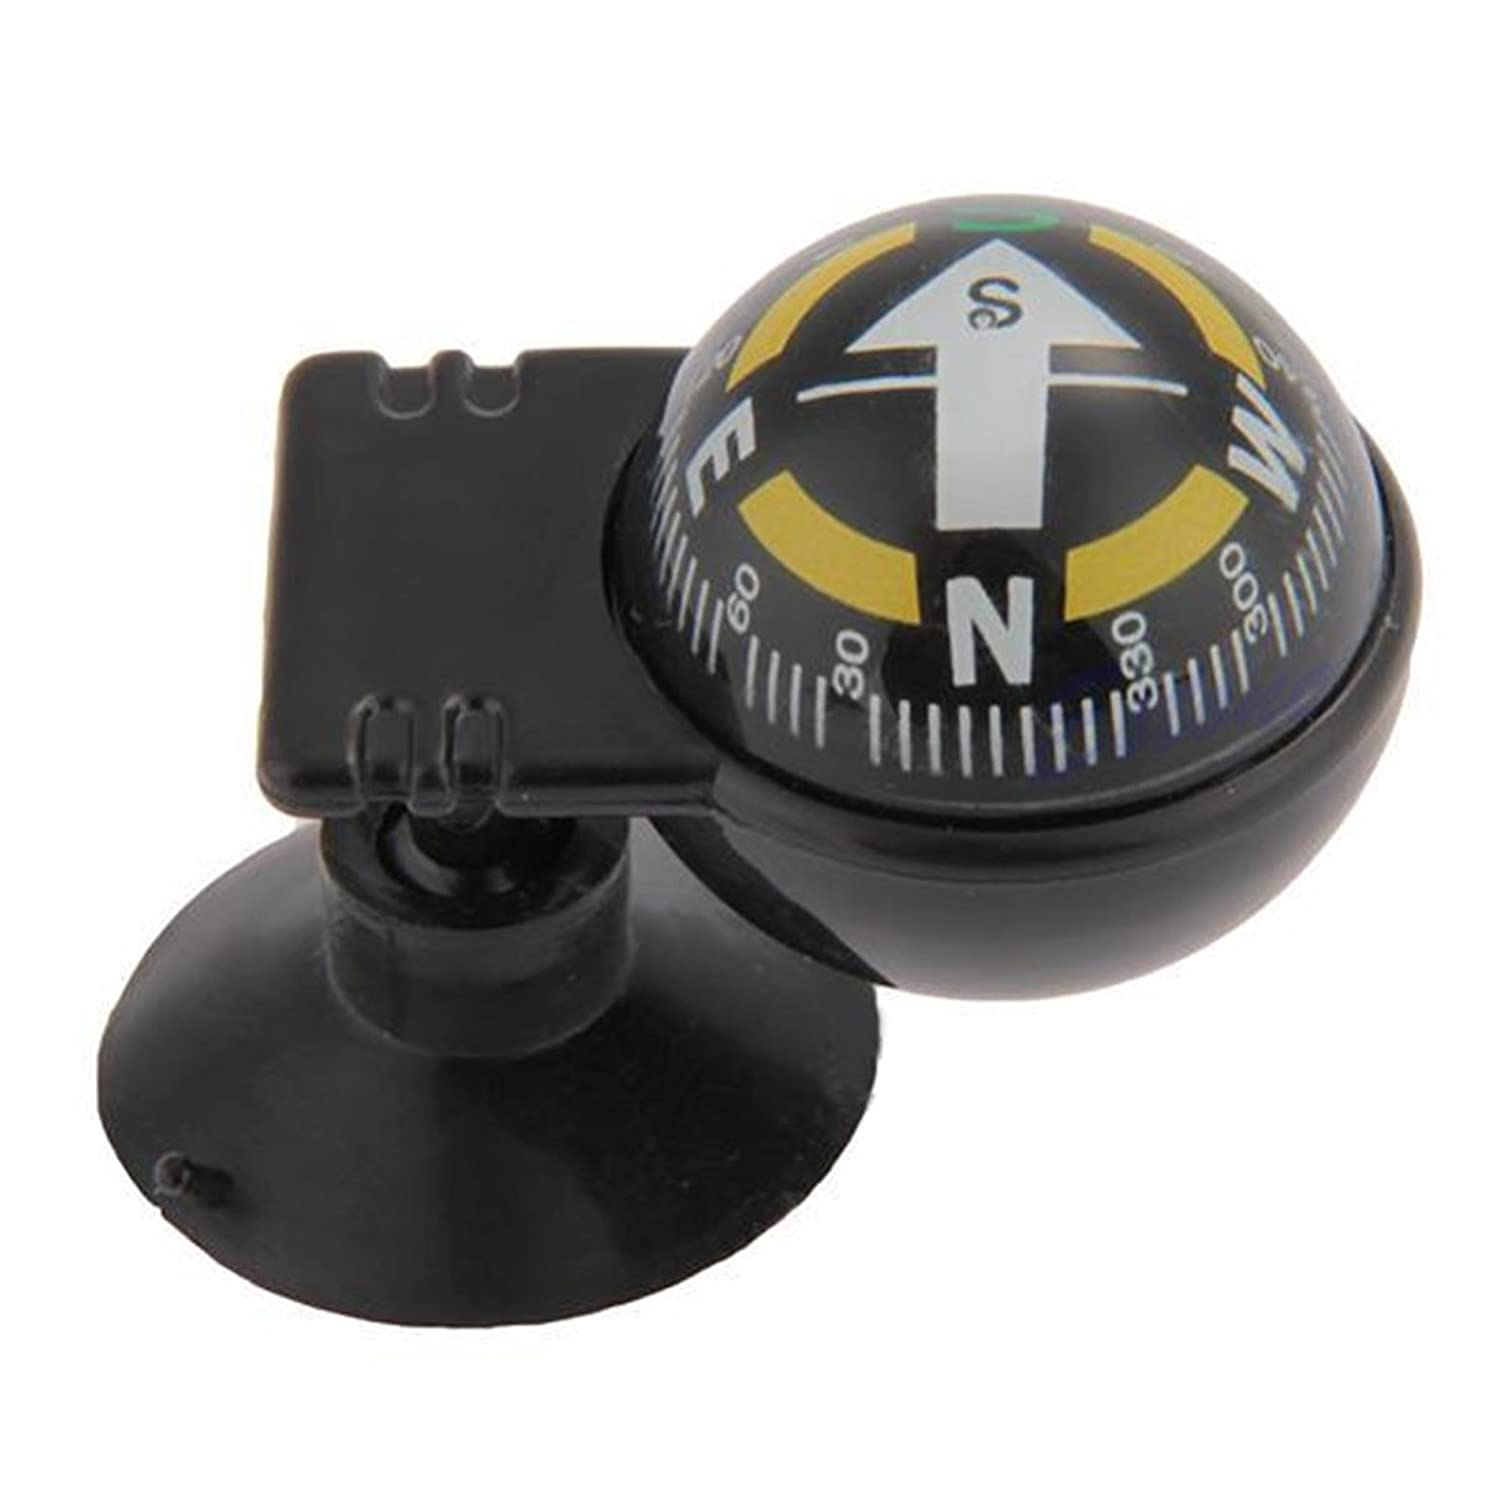 1 Pc Pocket Black Ball Compass Keychain Dash Mount Navigation Car Boat Truck Survival Emergency Life Military Powerful Popular Outdoor Hunting Waterproof Whistle Backpack Geometry Map Guide Tools Kits